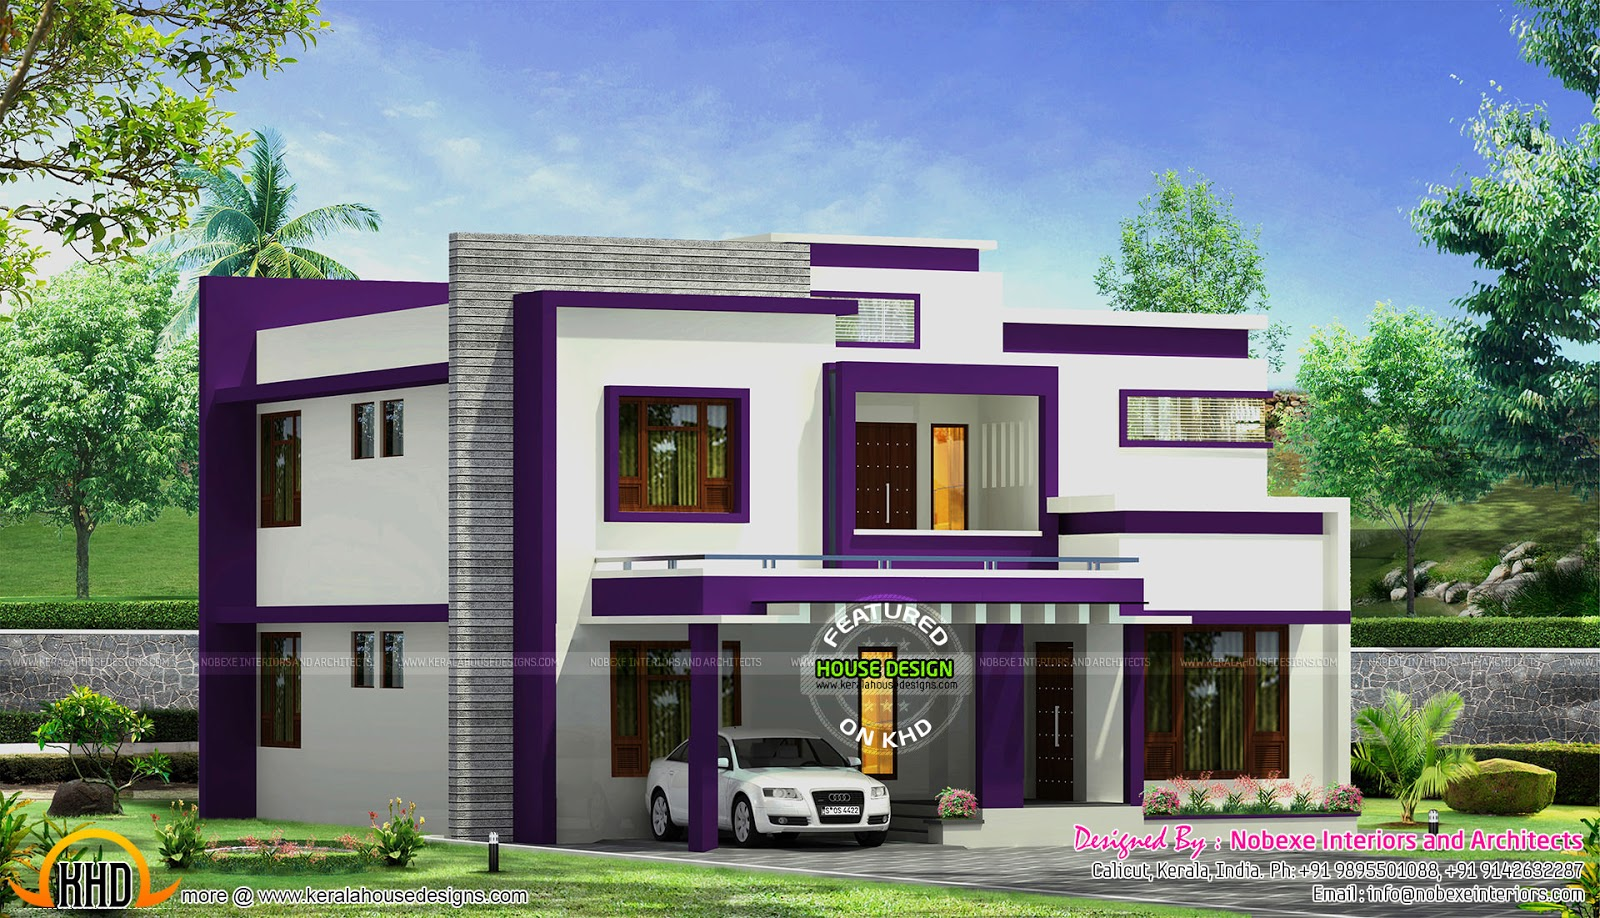 Contemporary home design by nobexe interiors kerala home for Contemporary house design ideas